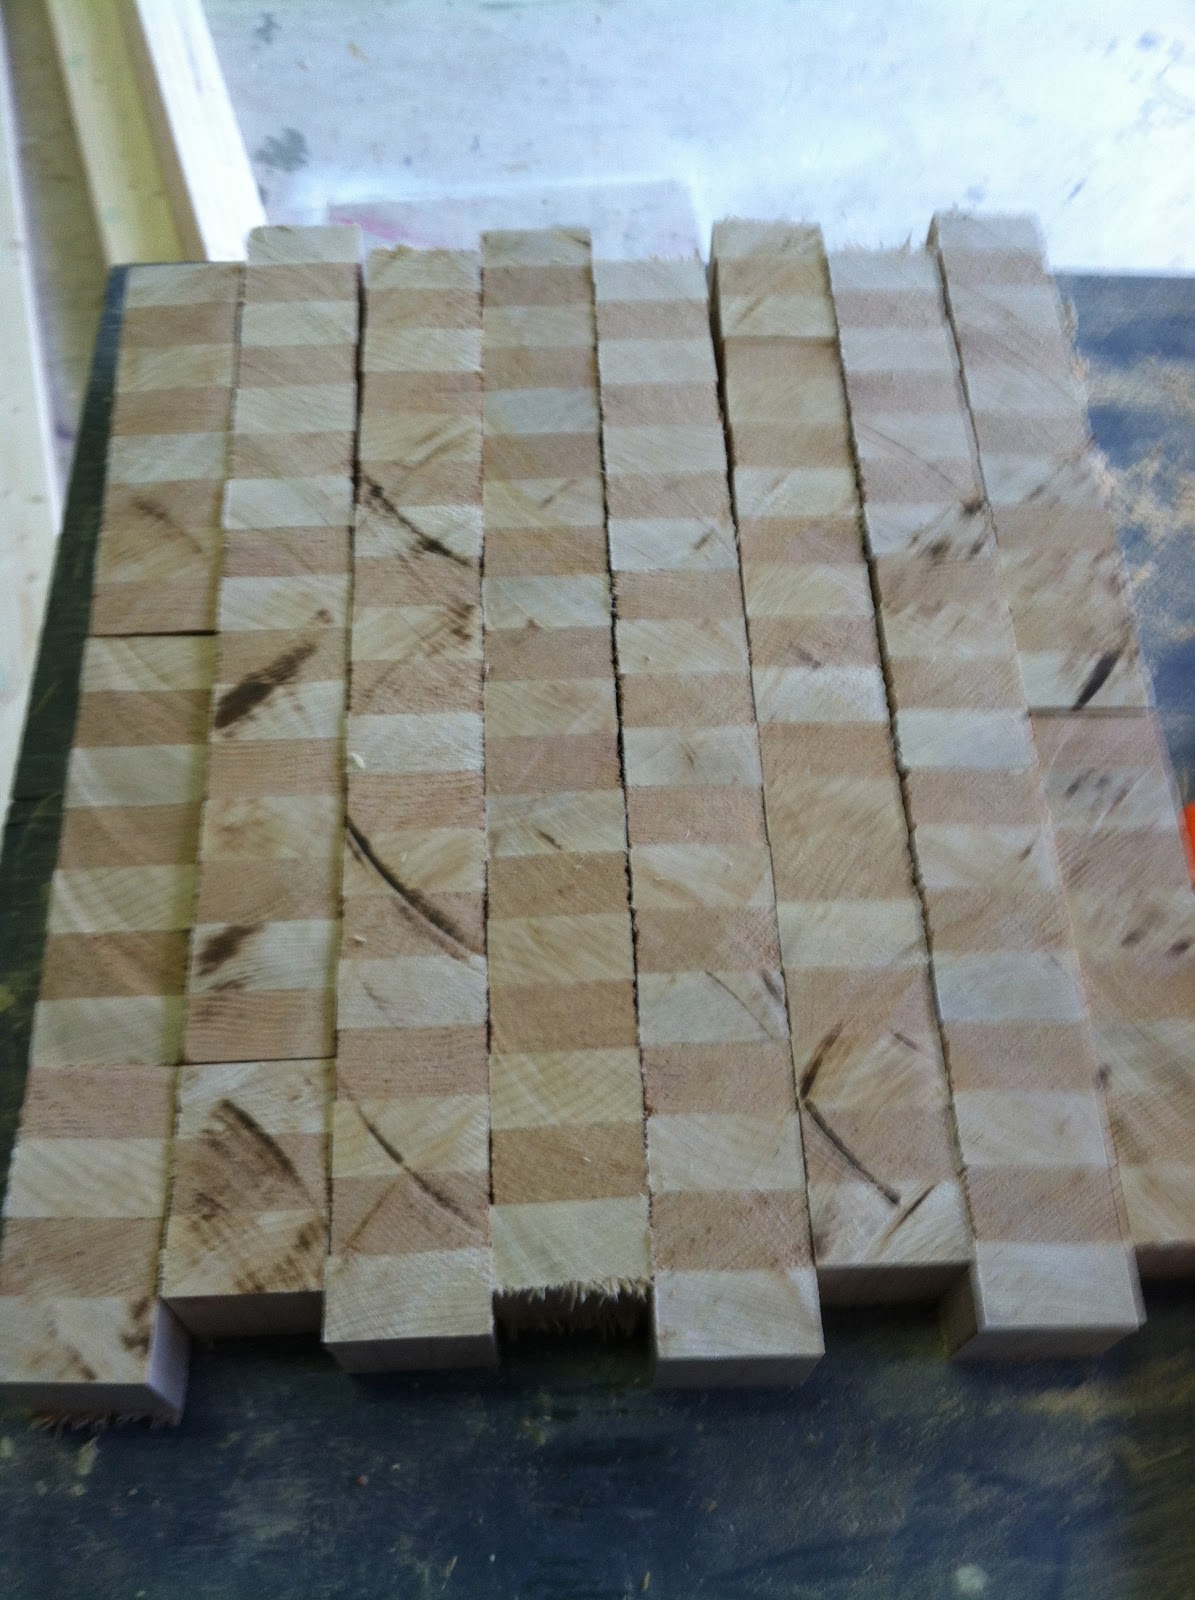 I Ended Up With 8 Strips, Then Turned Them To Their End Grain And Laid Them  In A Checkerboard Pattern.